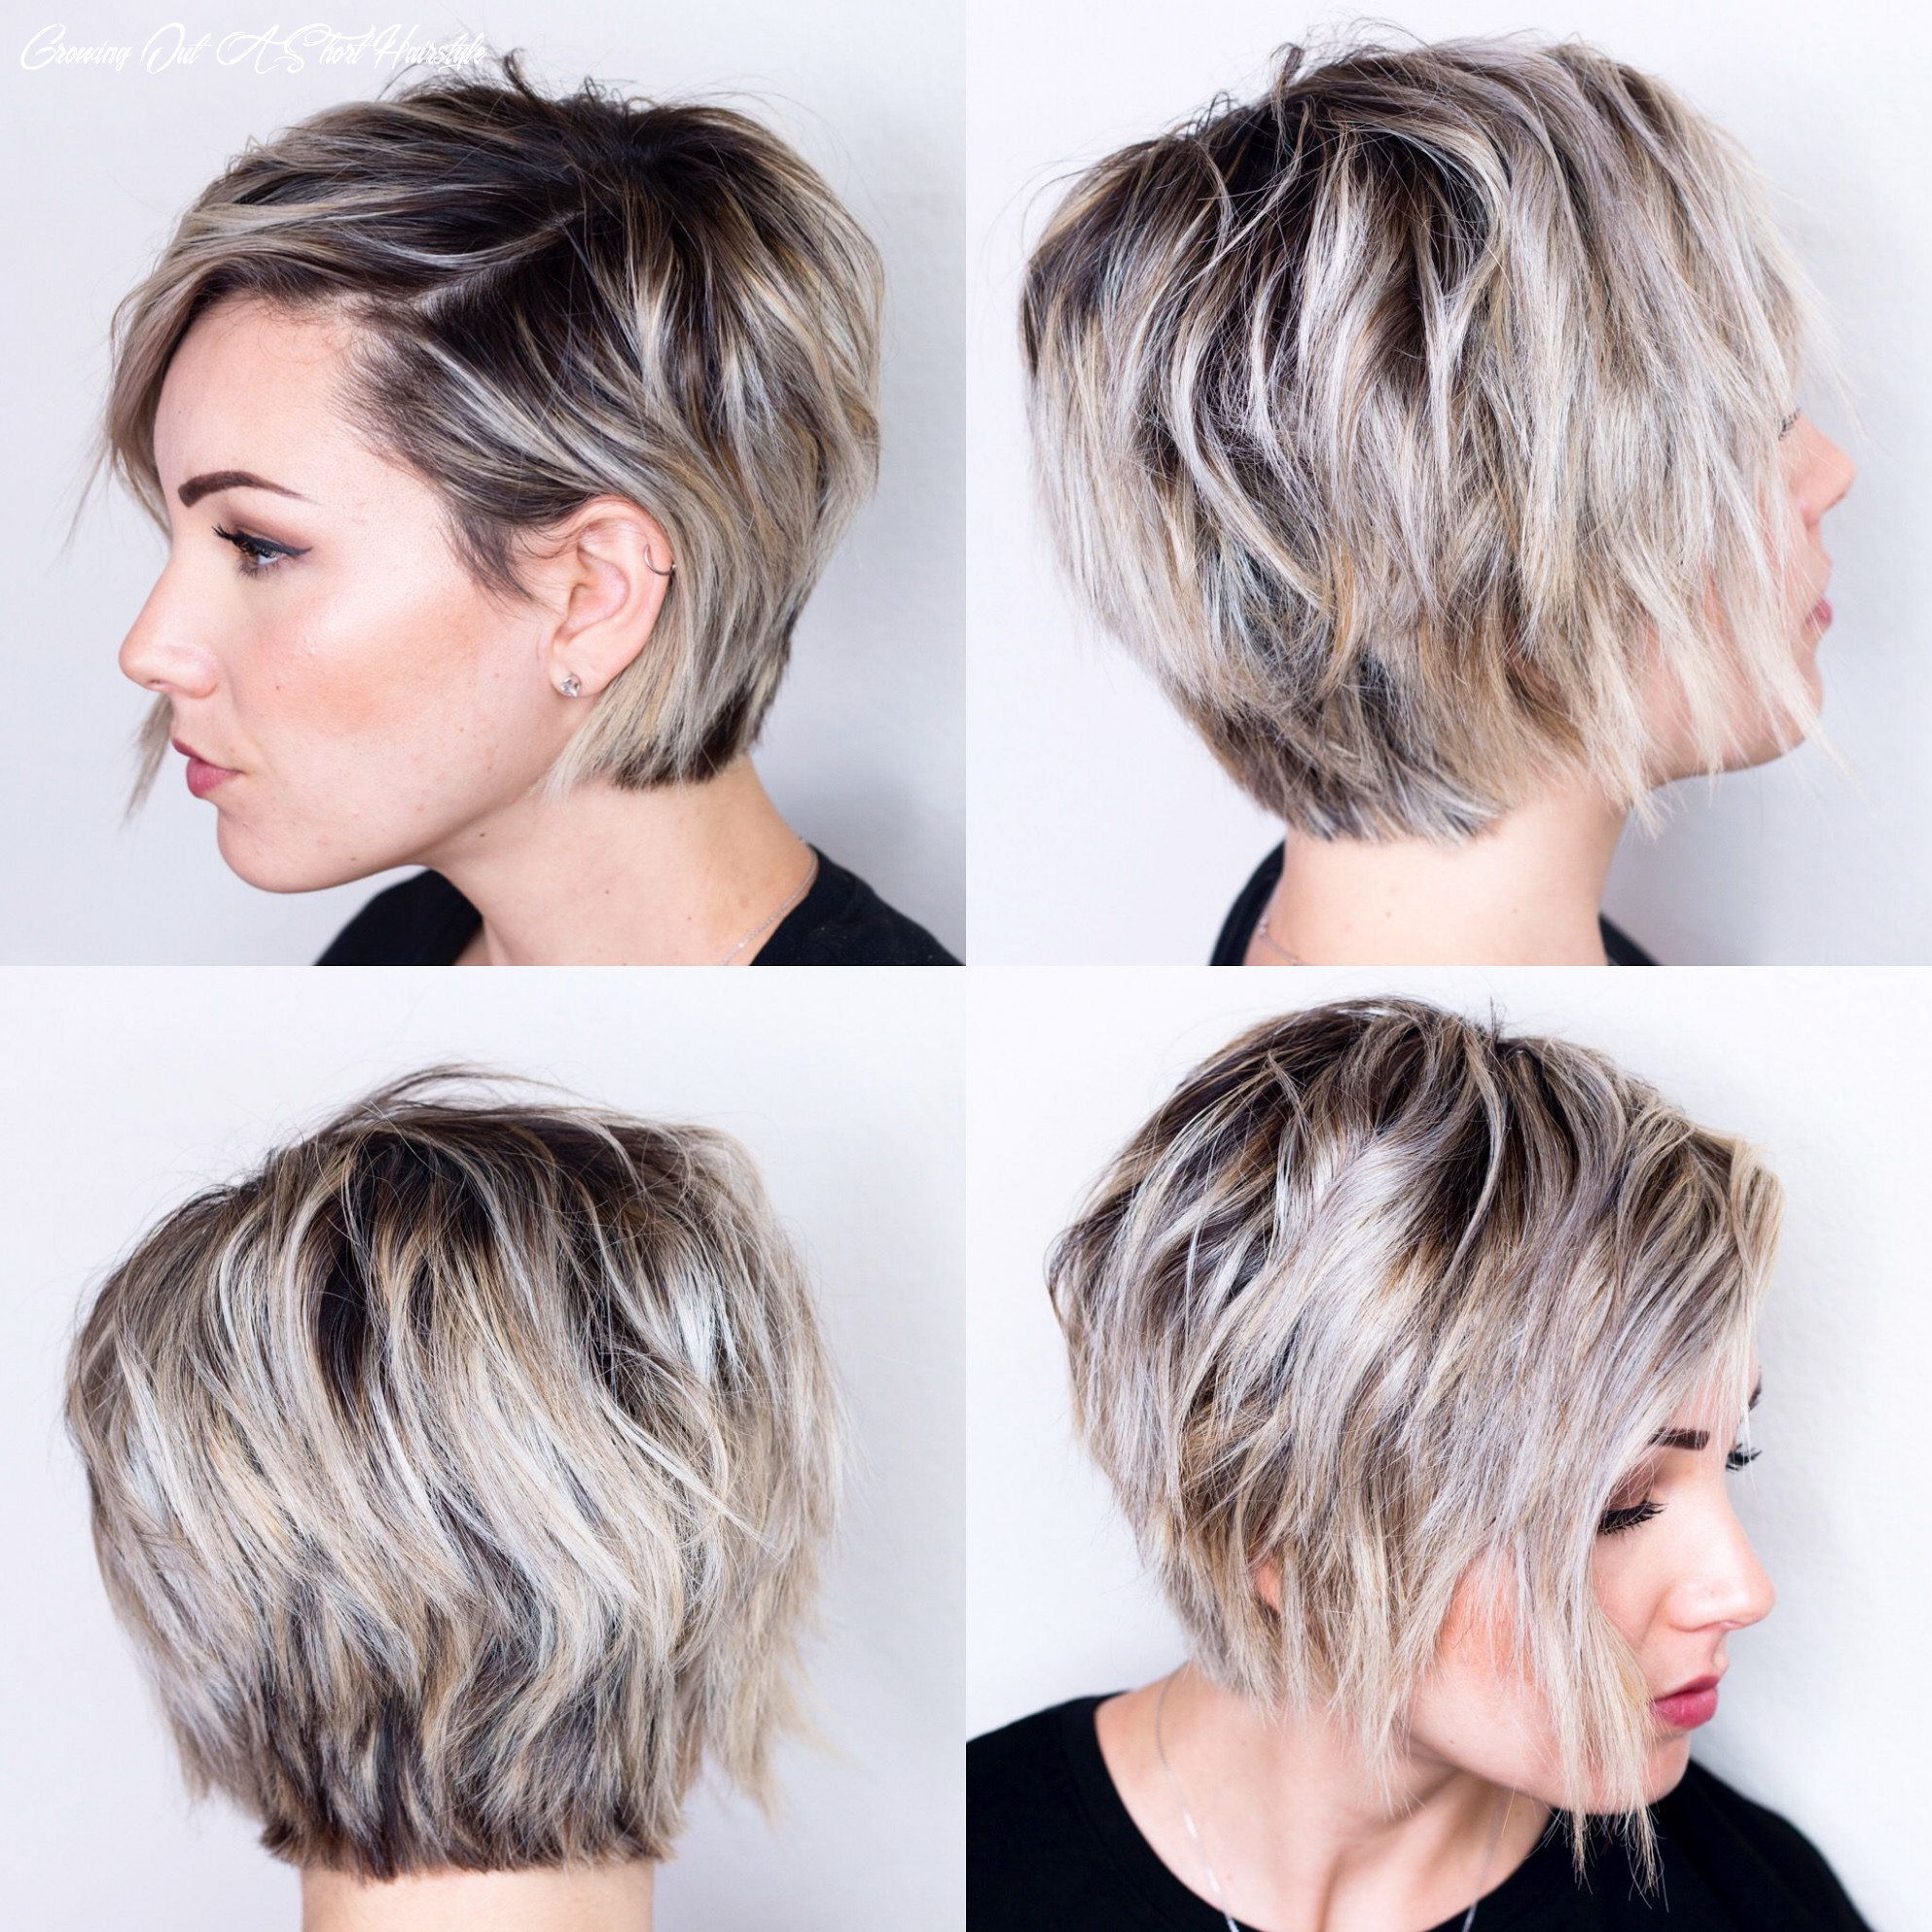 8 view of short hair | Oval face hairstyles, Growing out short ...